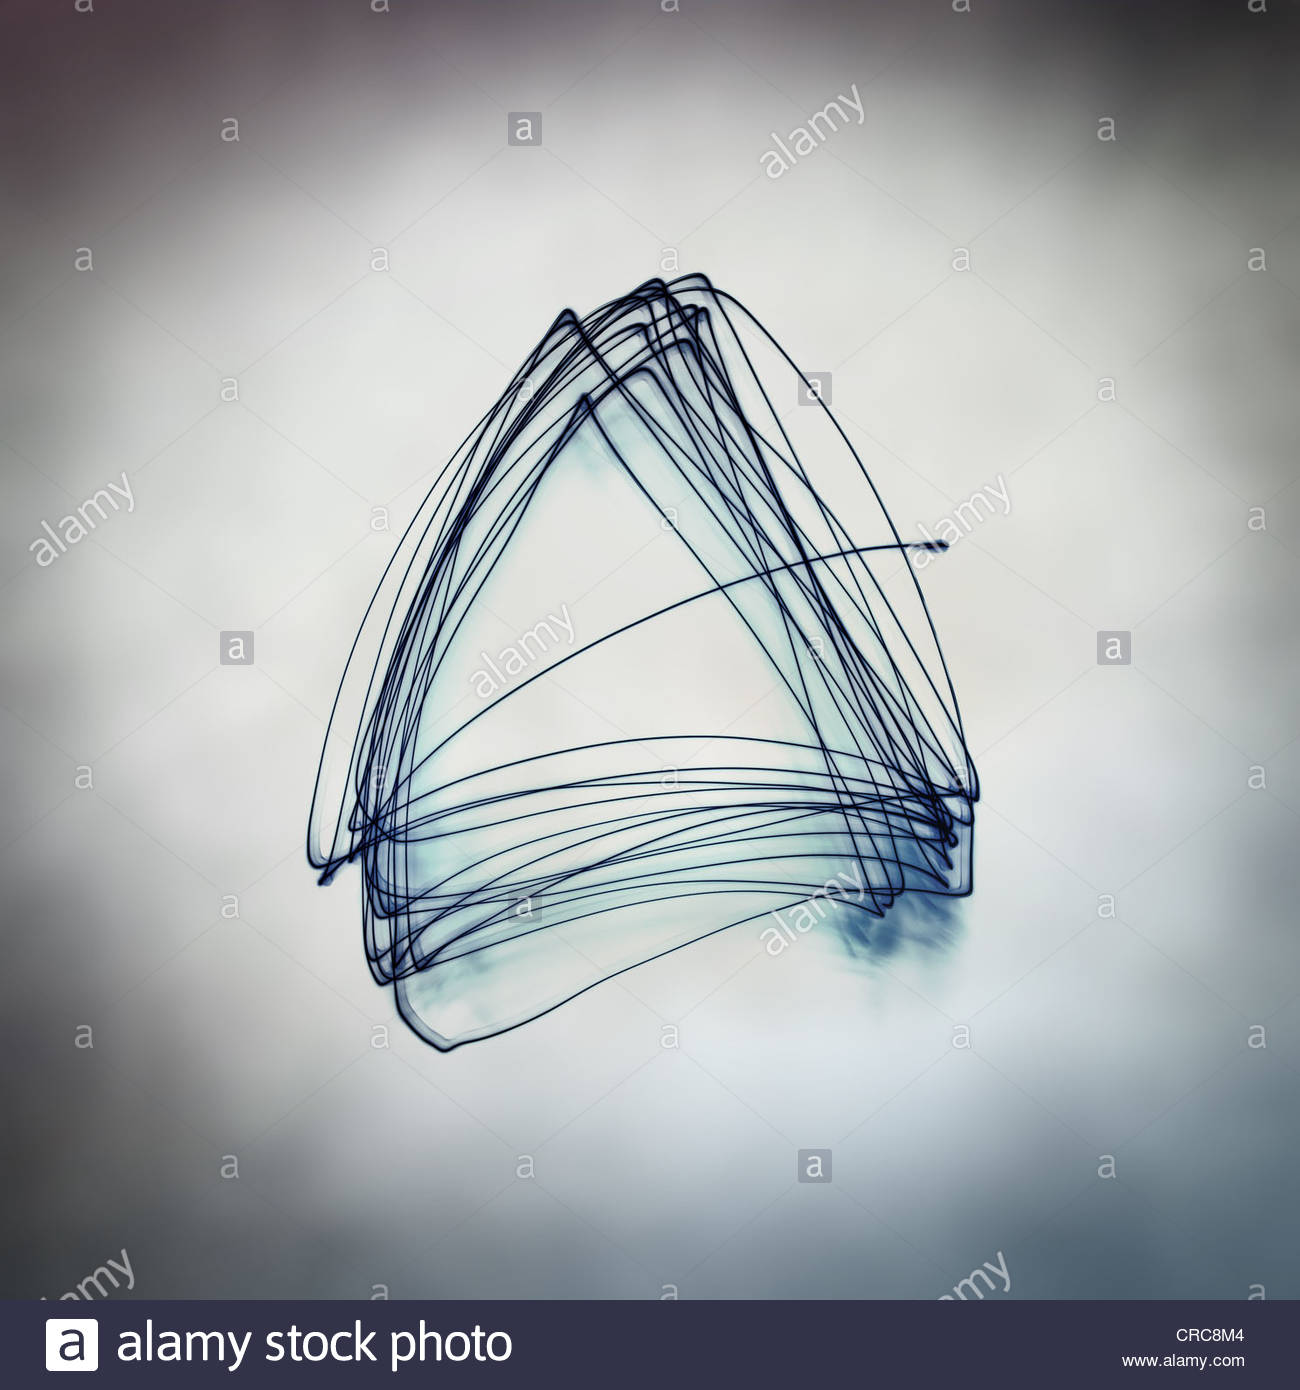 triangular abstract - Stock Image